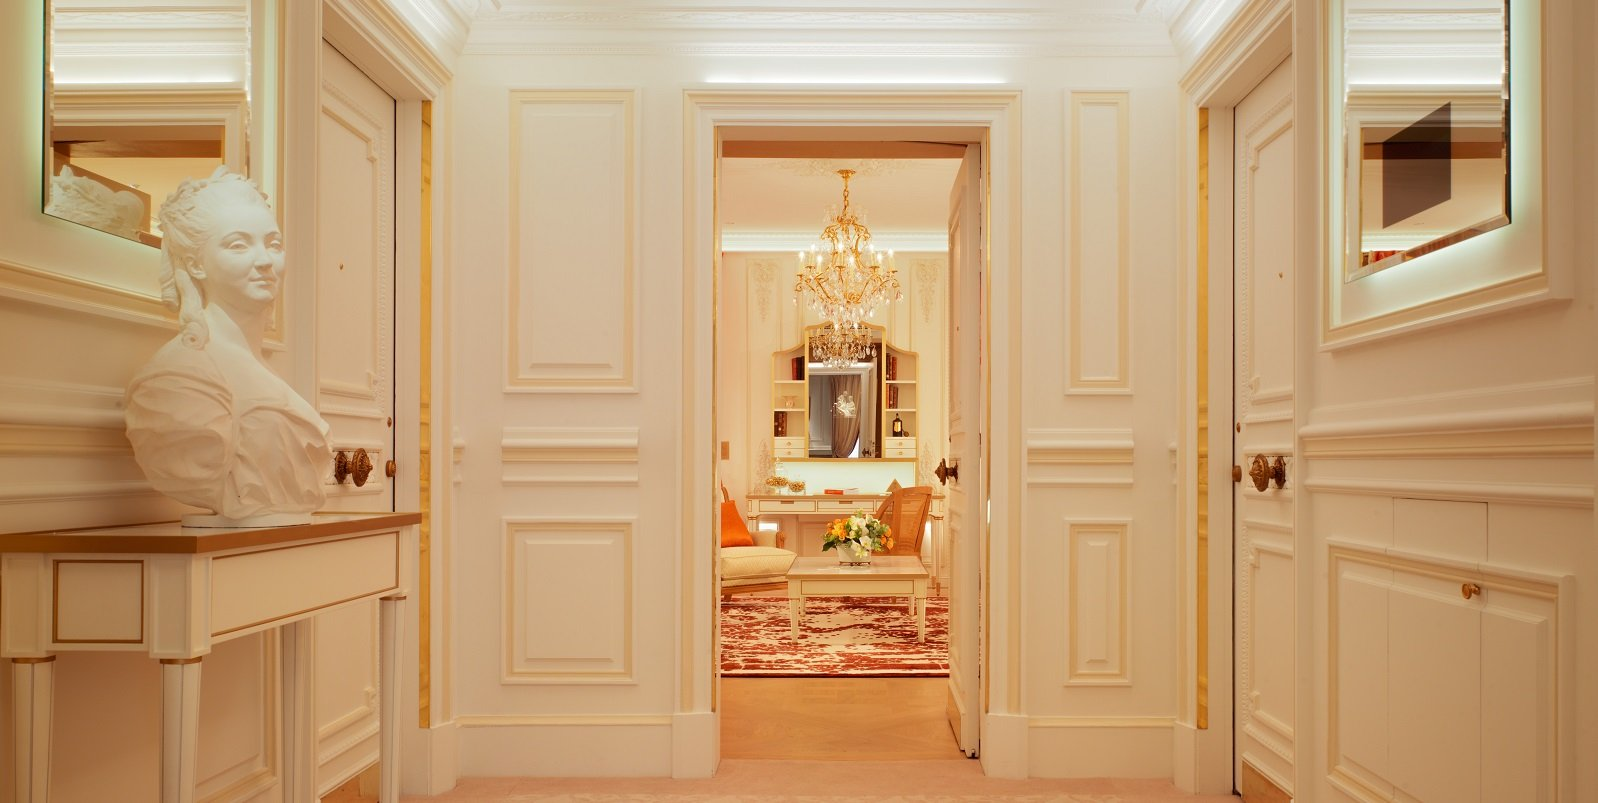 Le-meurice-Pompadour suite paris entrance